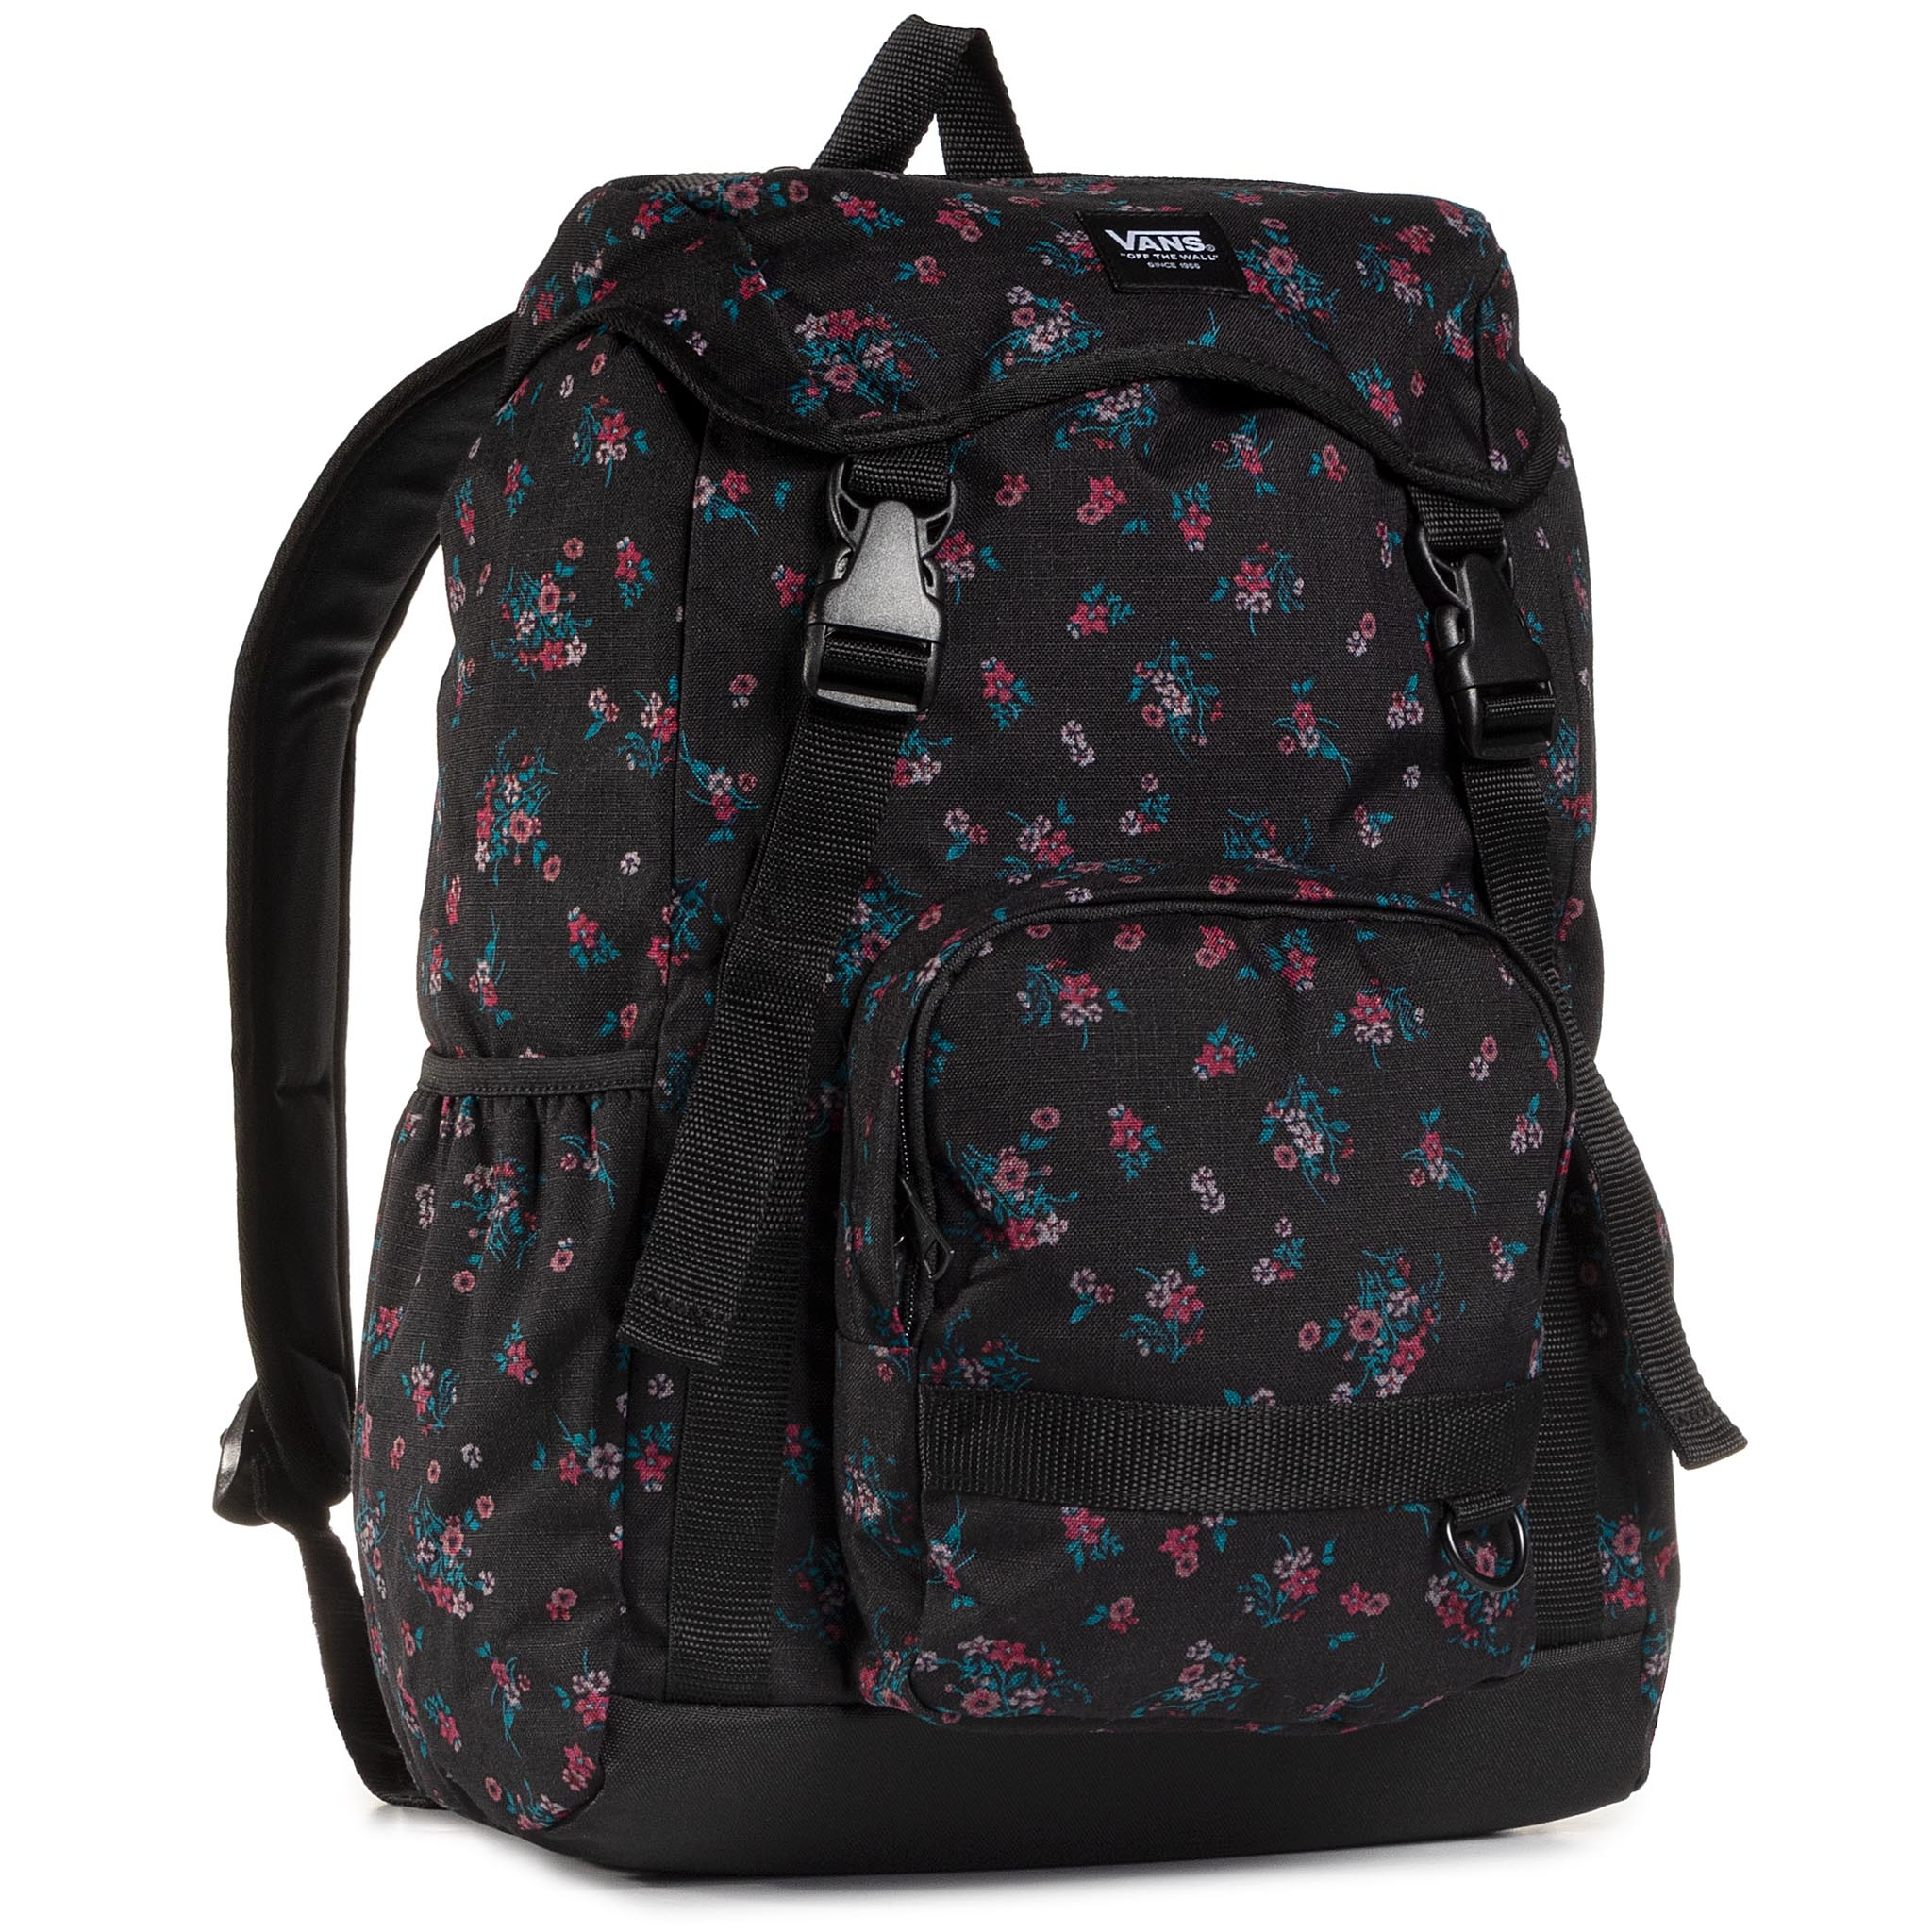 Sac à dos VANS - Ranger Backpack VN0A3NG2ZX31 Beauty Floral Black